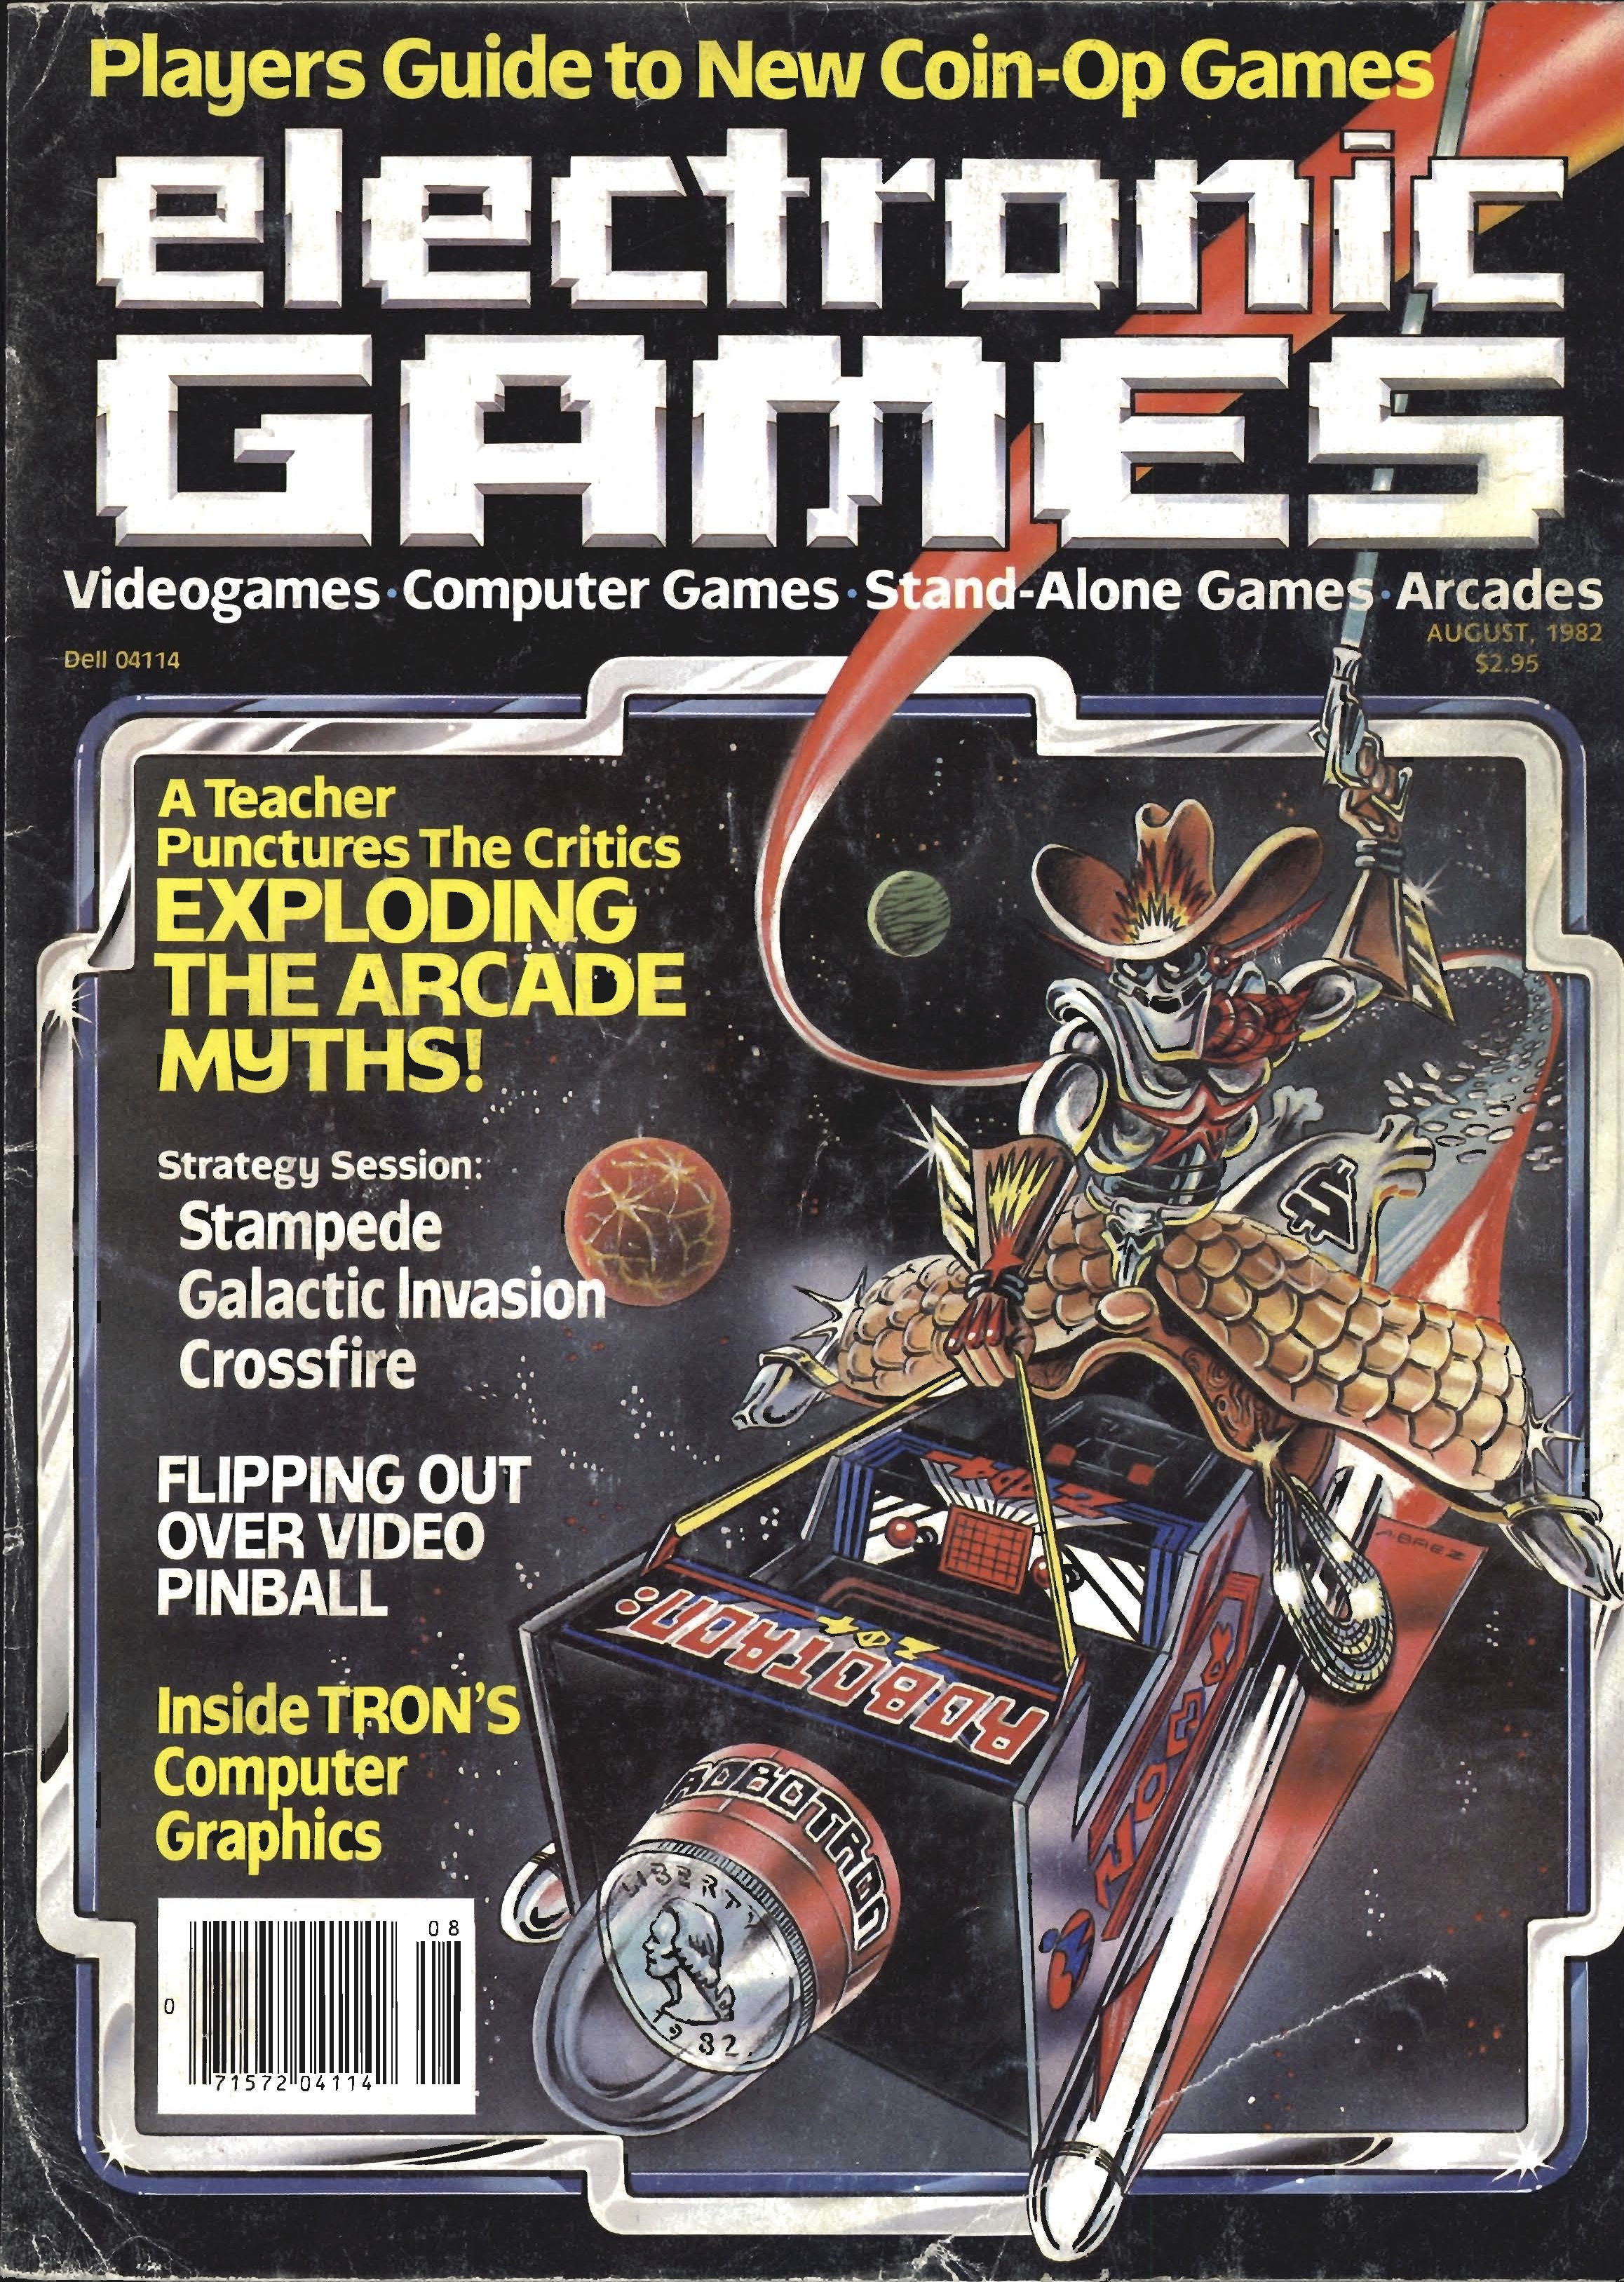 electonic games essay Video games are my hobby: my essay from english class, march 1982 october 10, 2011 8bitrocket 267 atari memoirs , atari nerd , atari nerd chronicles , site history , my essay for mr davis' 6th grade english class, march 22, 1982, foster a, begg, junior high, manhattan beach, ca.